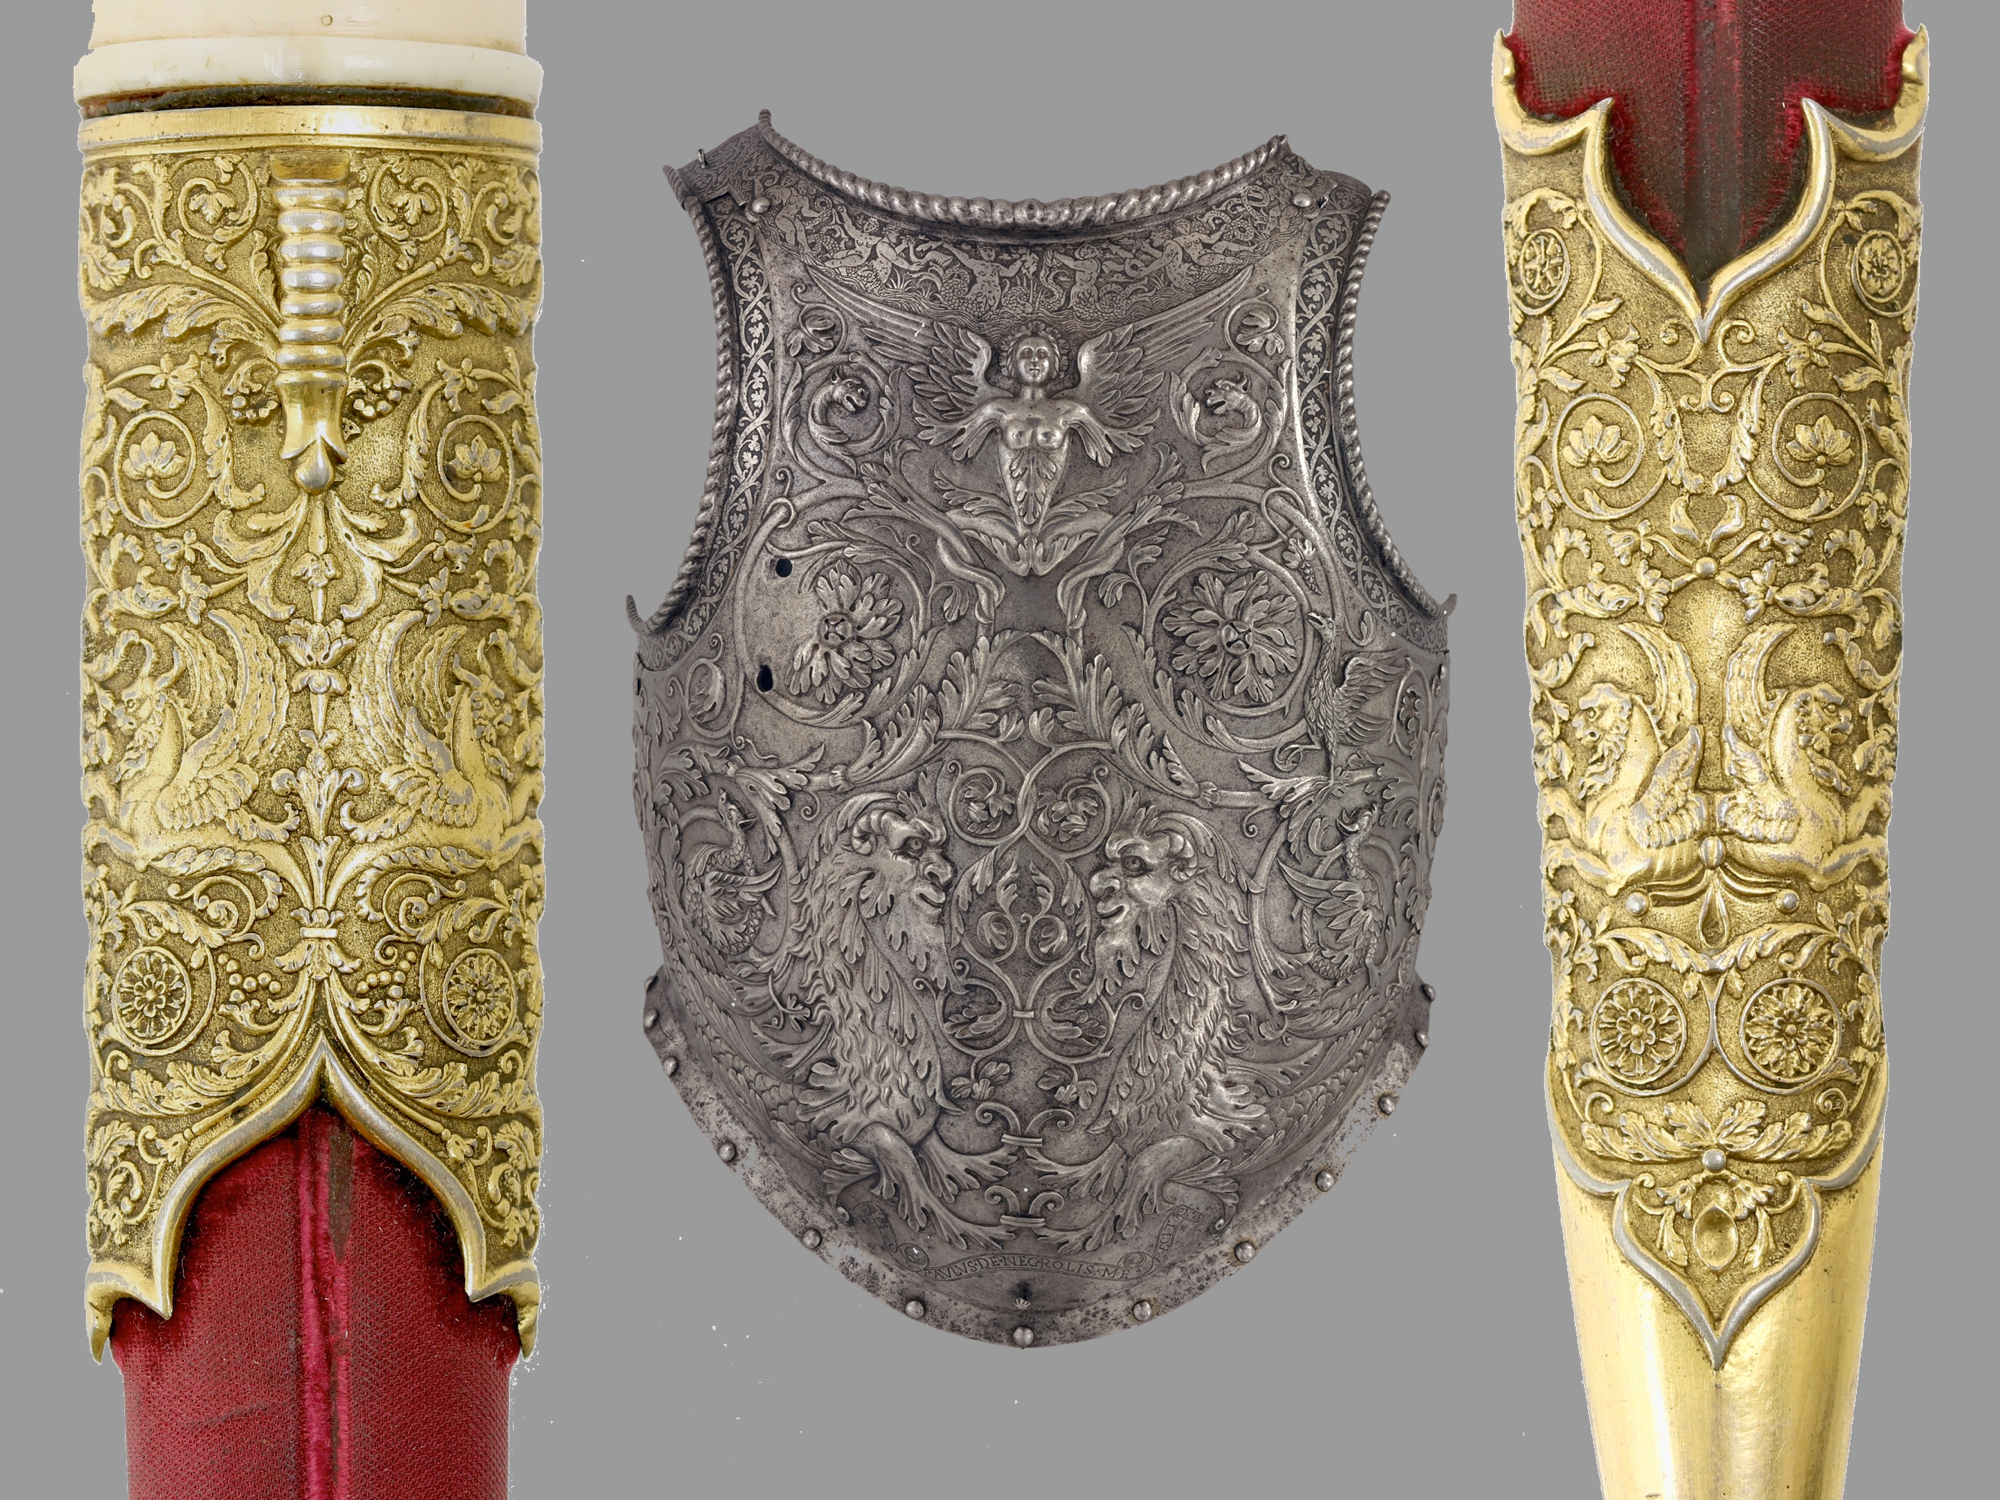 Comparison between Ottoman style dagger and Milanese renaissance breastplate